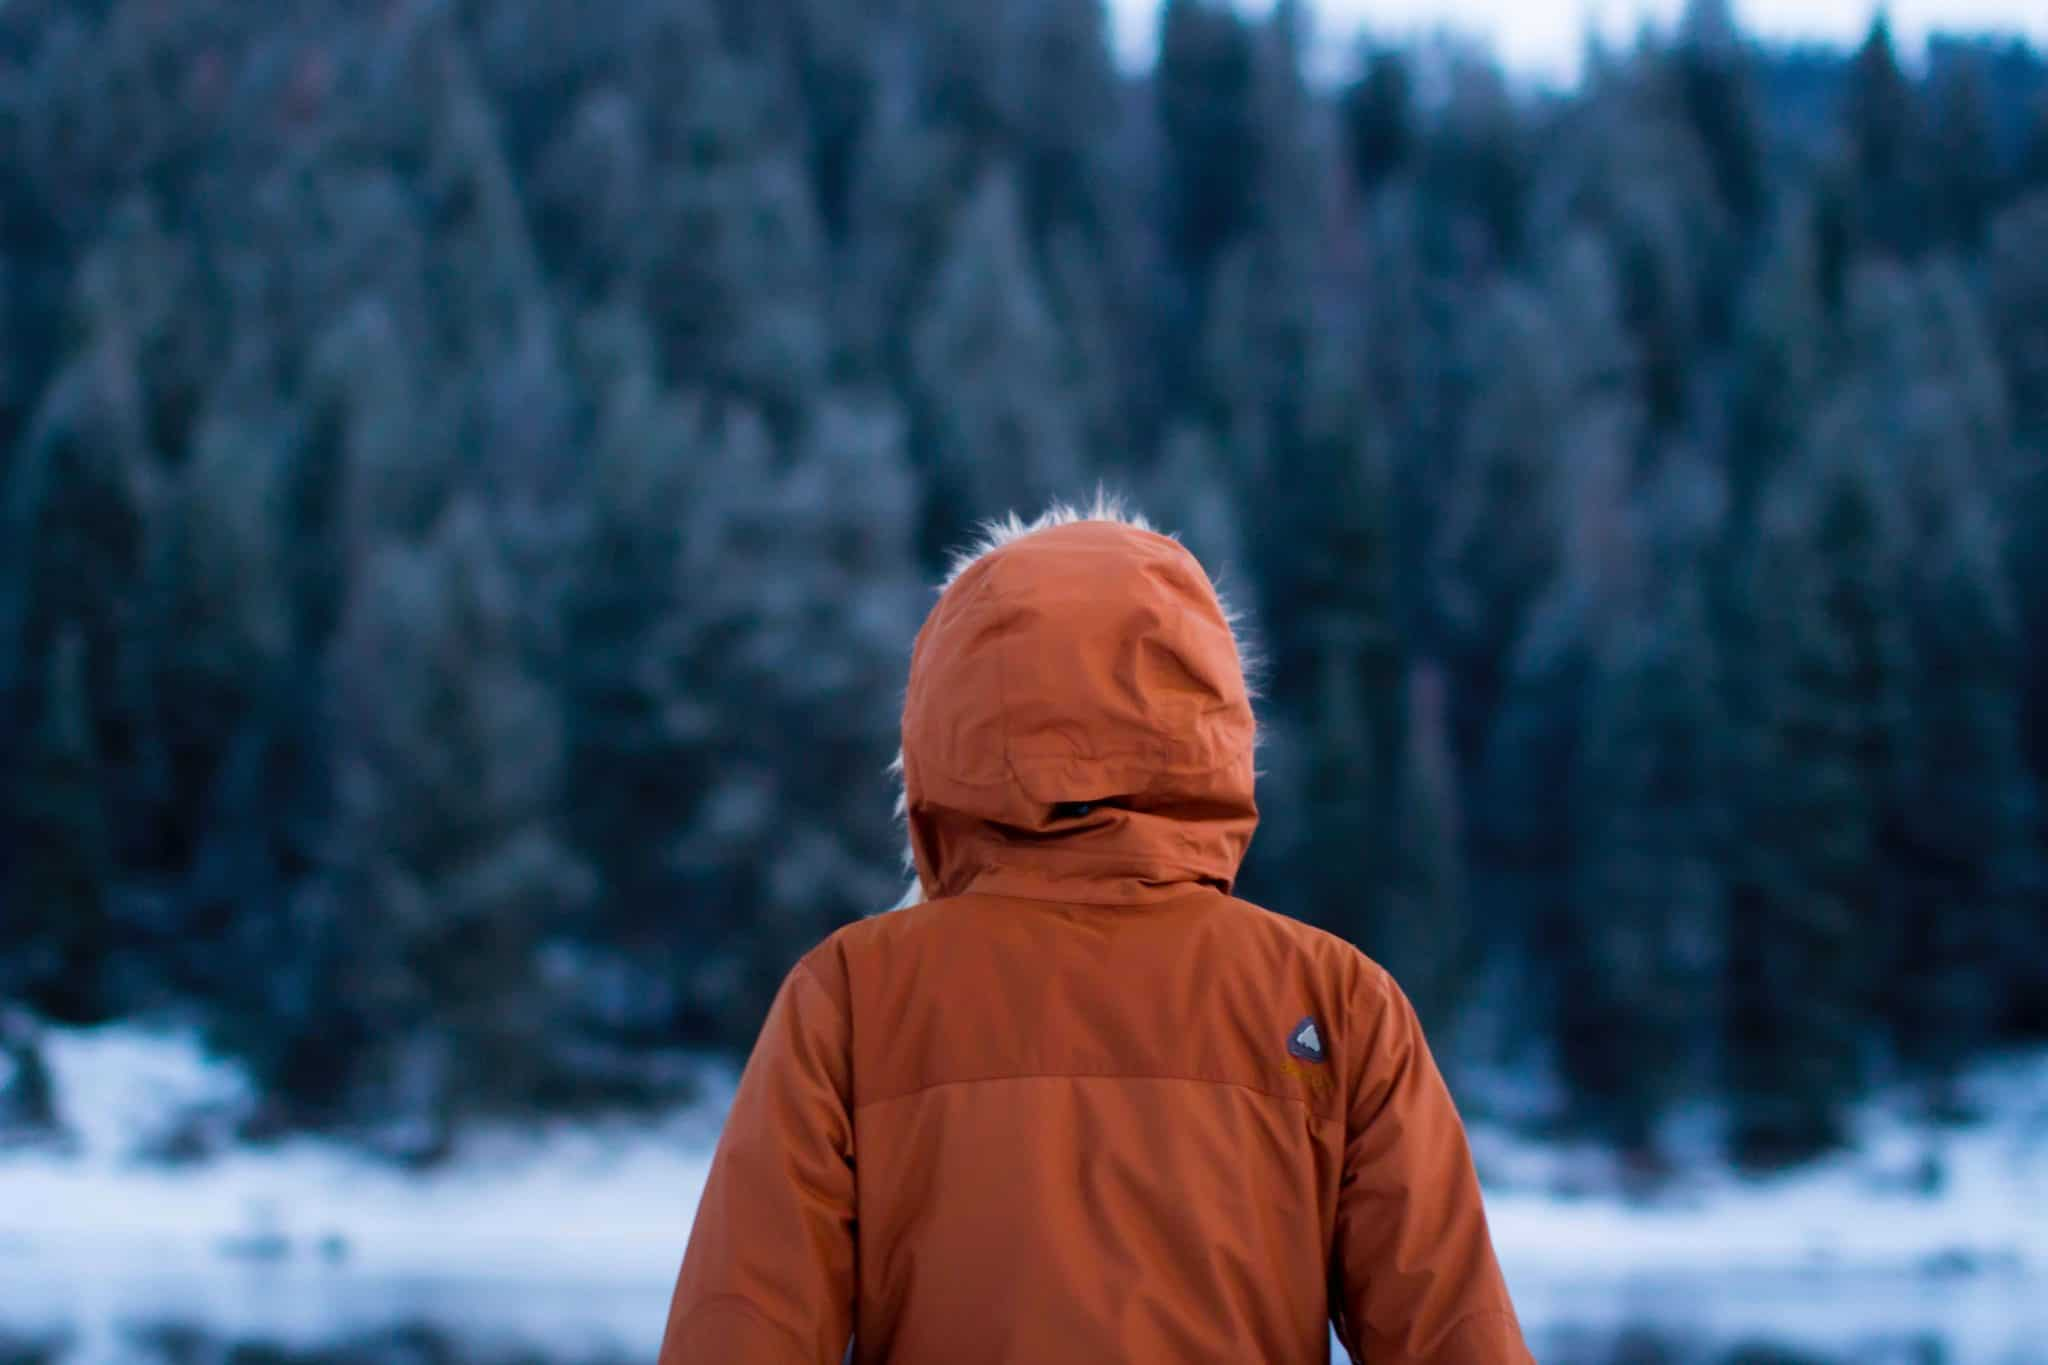 Tips On How To Overcome The Winter Blues